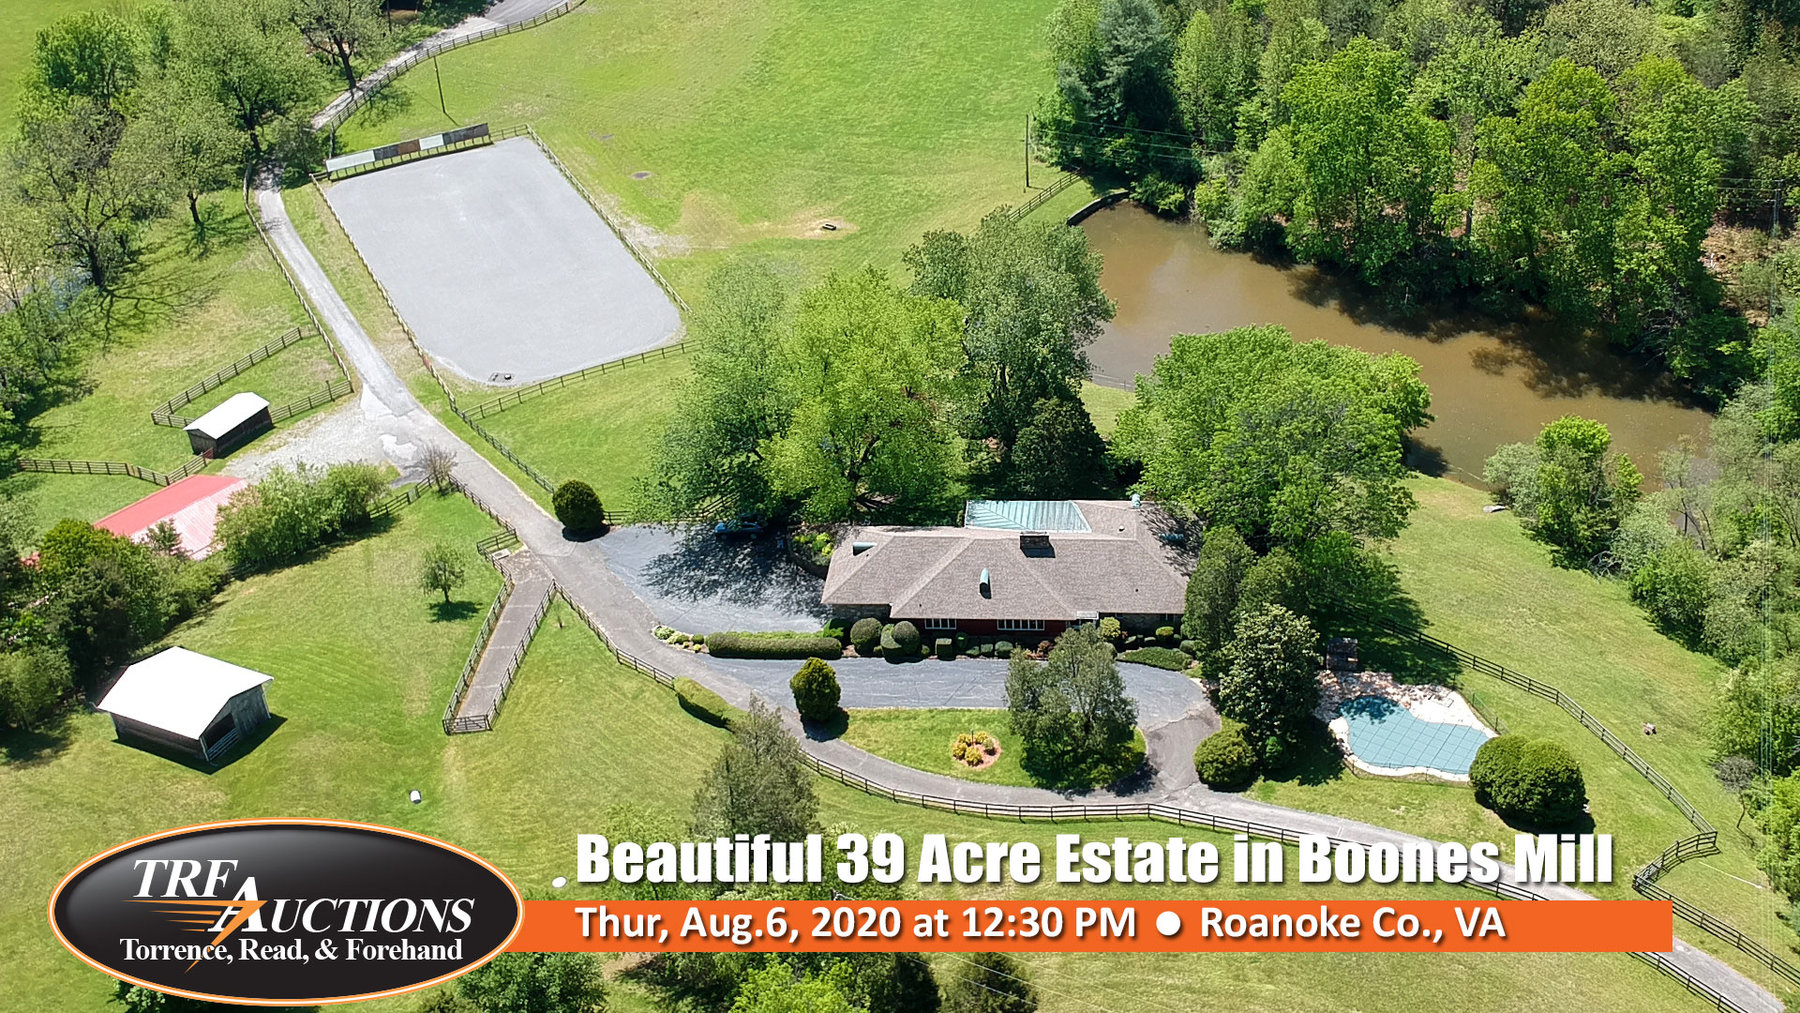 Beautiful 39 Acre Estate with 2Homes, Pond, Stream, Horse Facilities